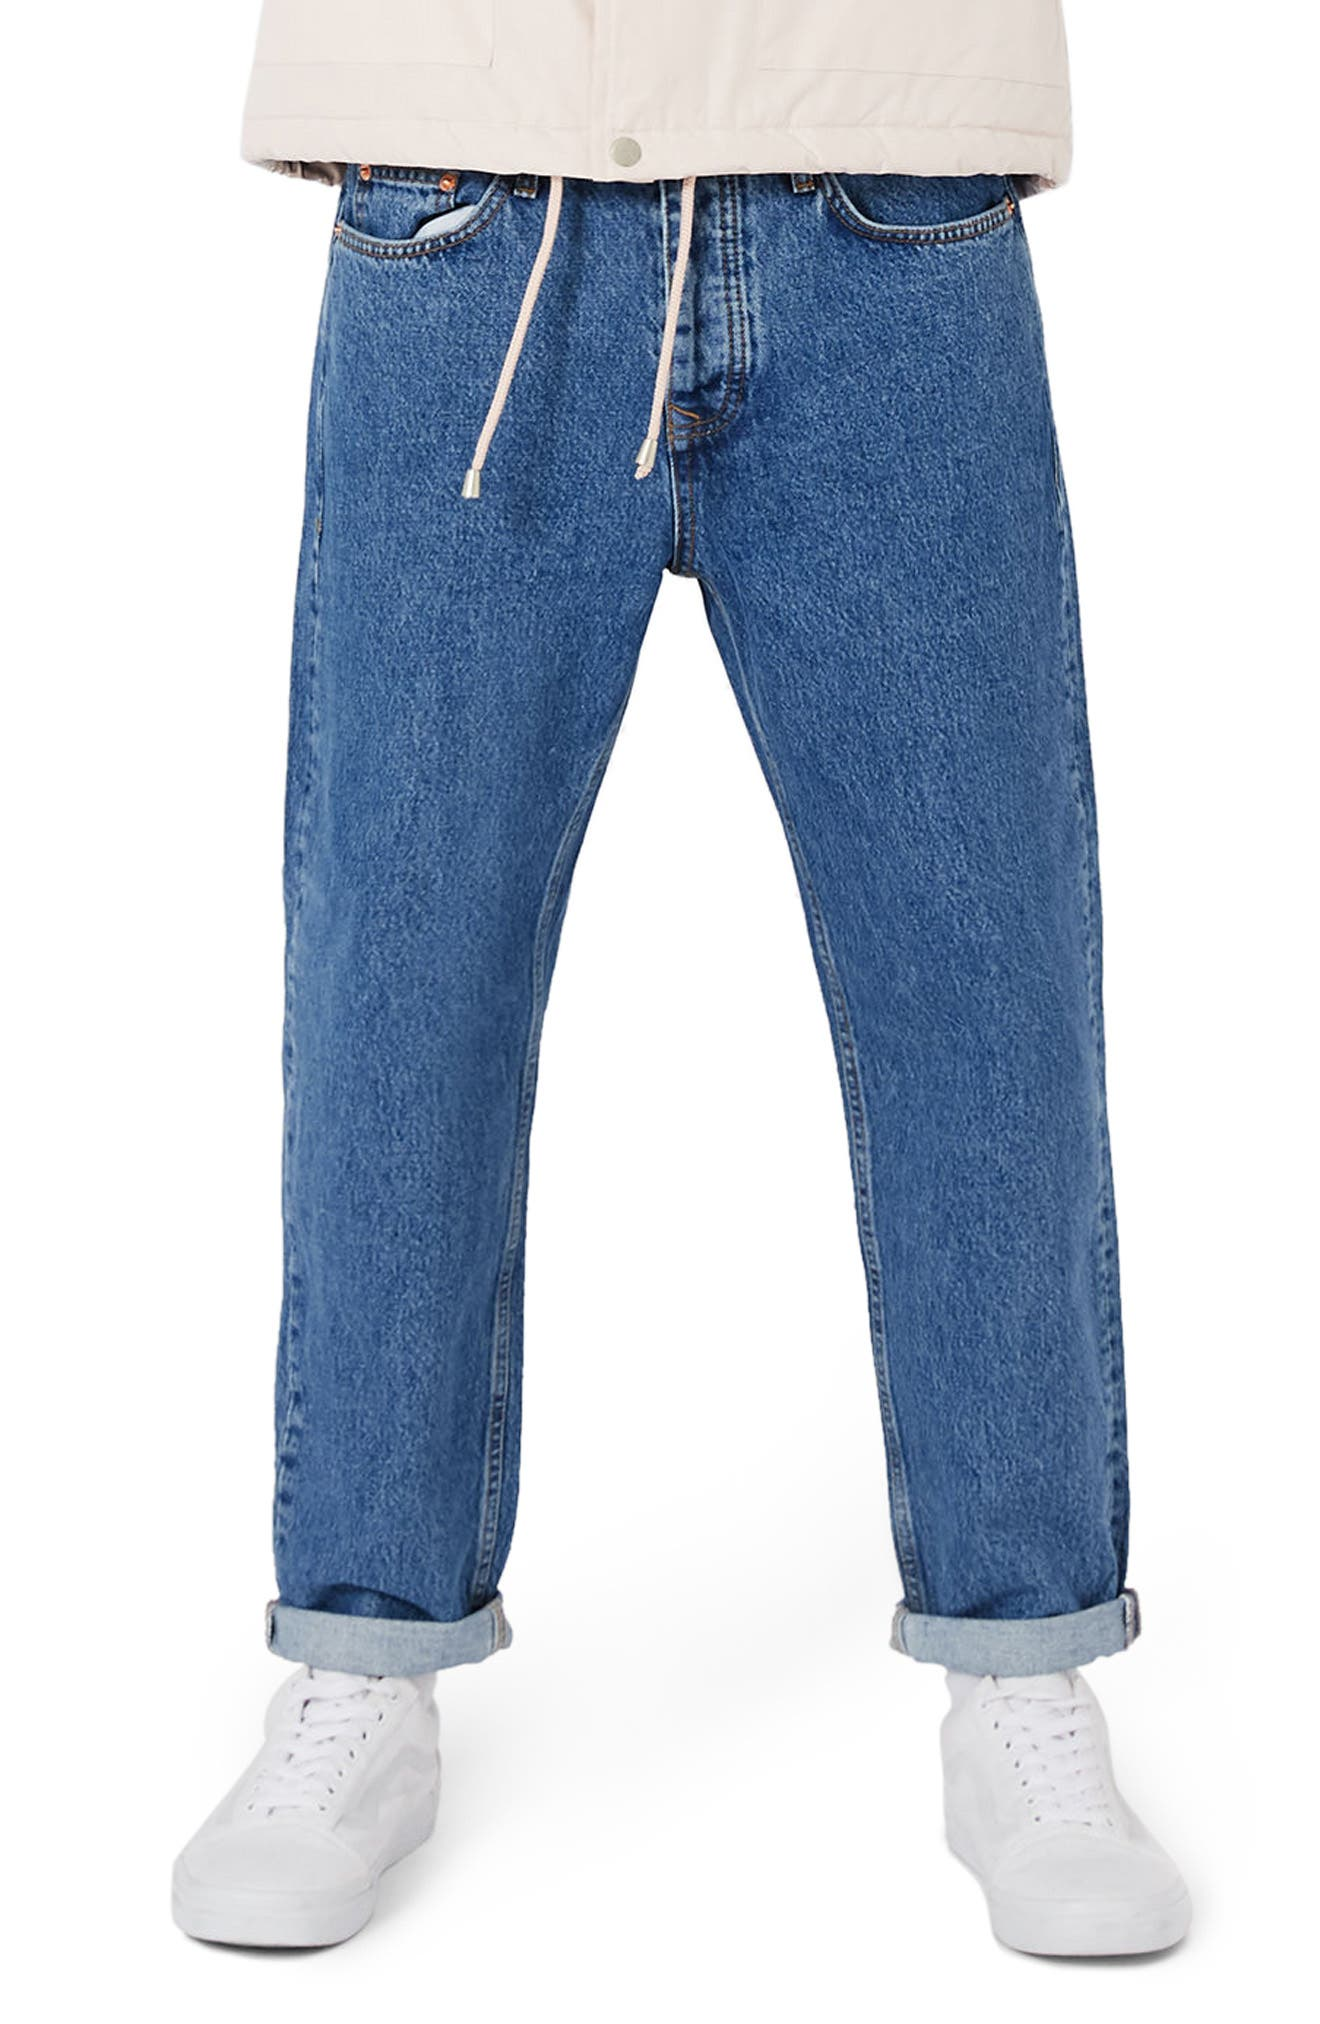 Topman Original Crop Straight Leg Jeans